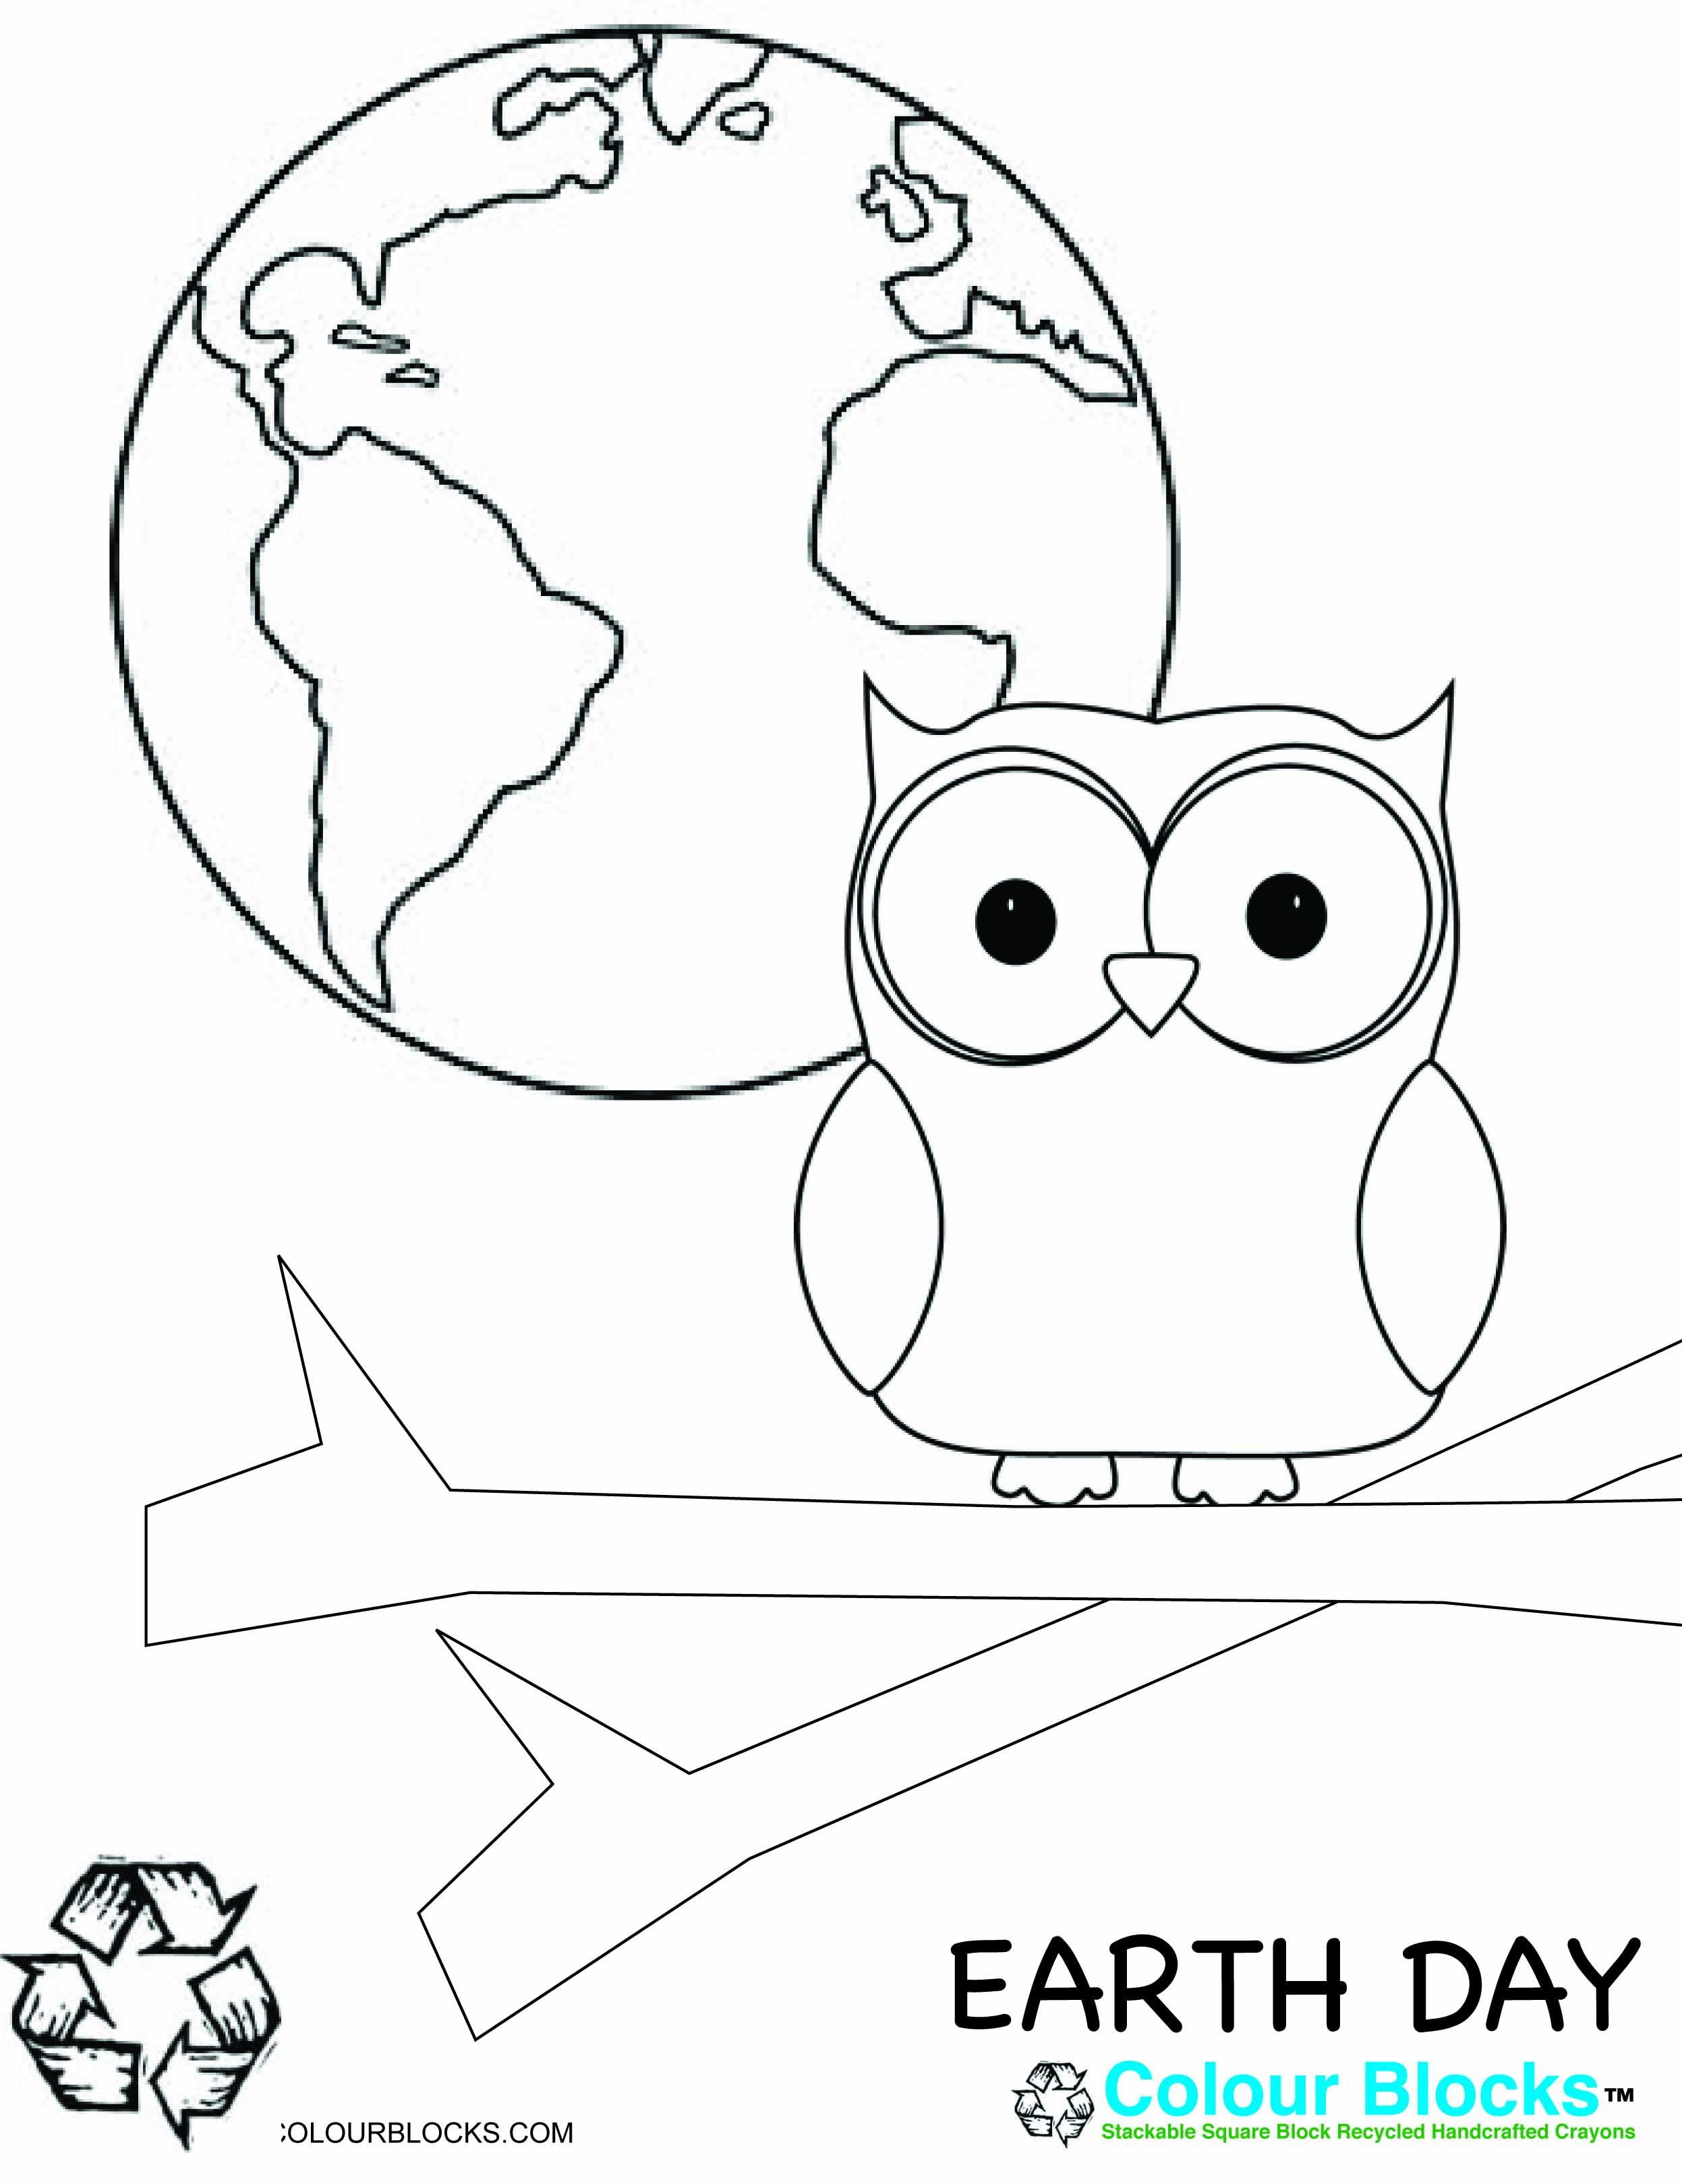 great journey ahead 13 columbus day coloring pages print color craft